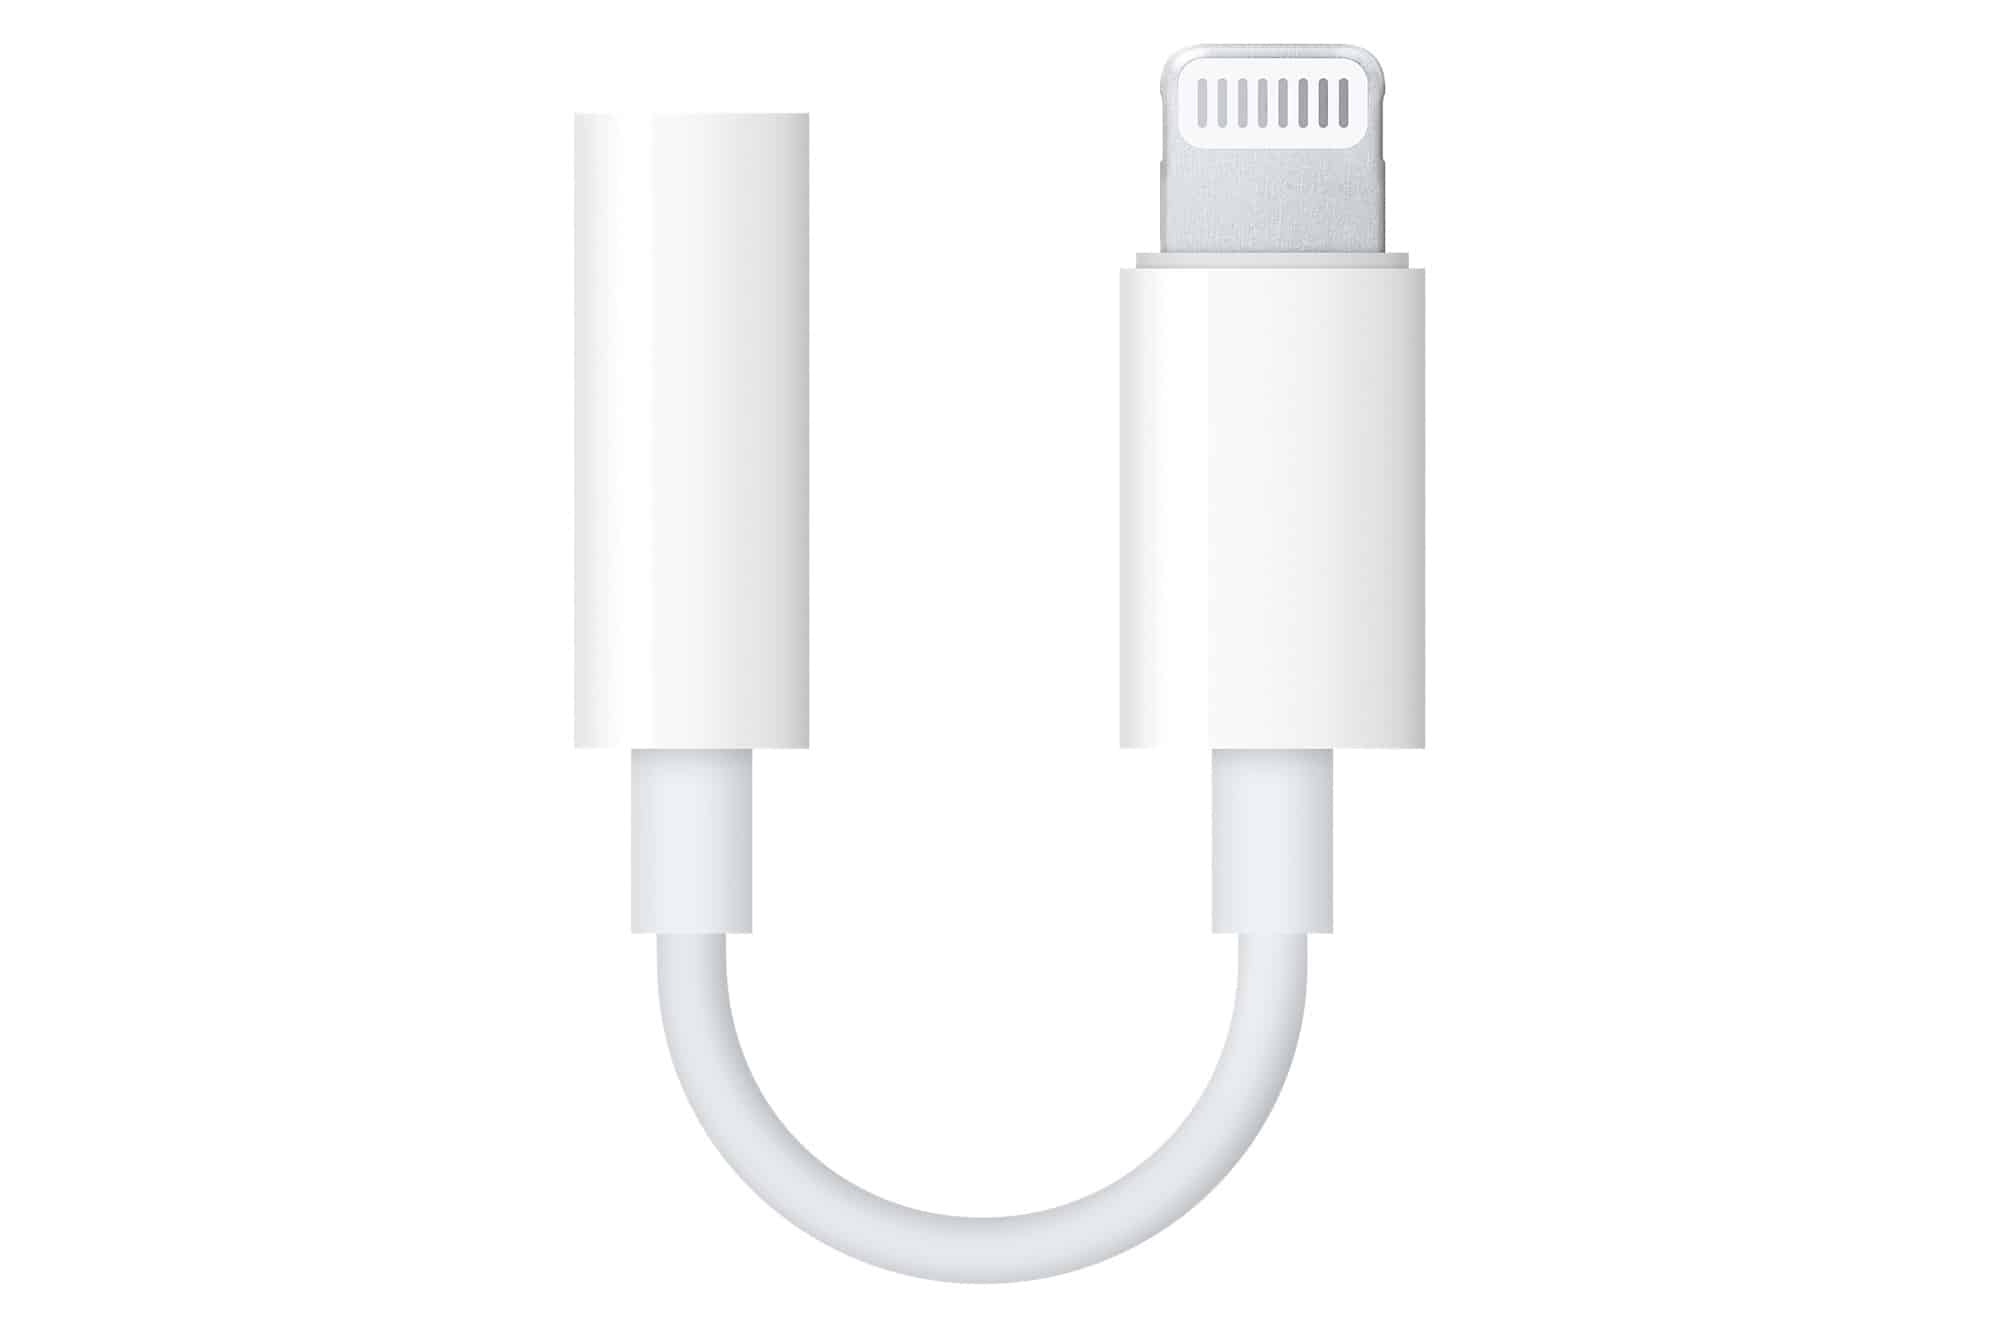 Apple 3.5mm to Lightning cable